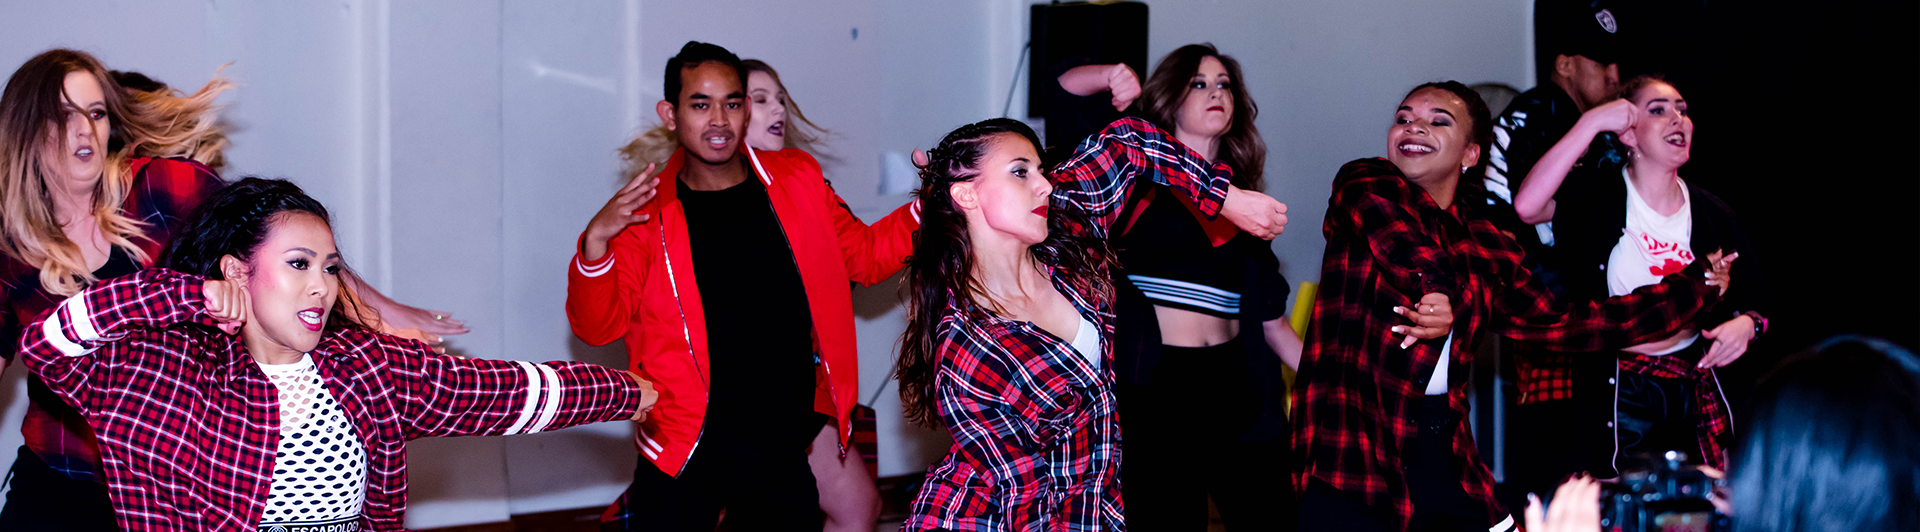 perth-hip-hop-dance-classes